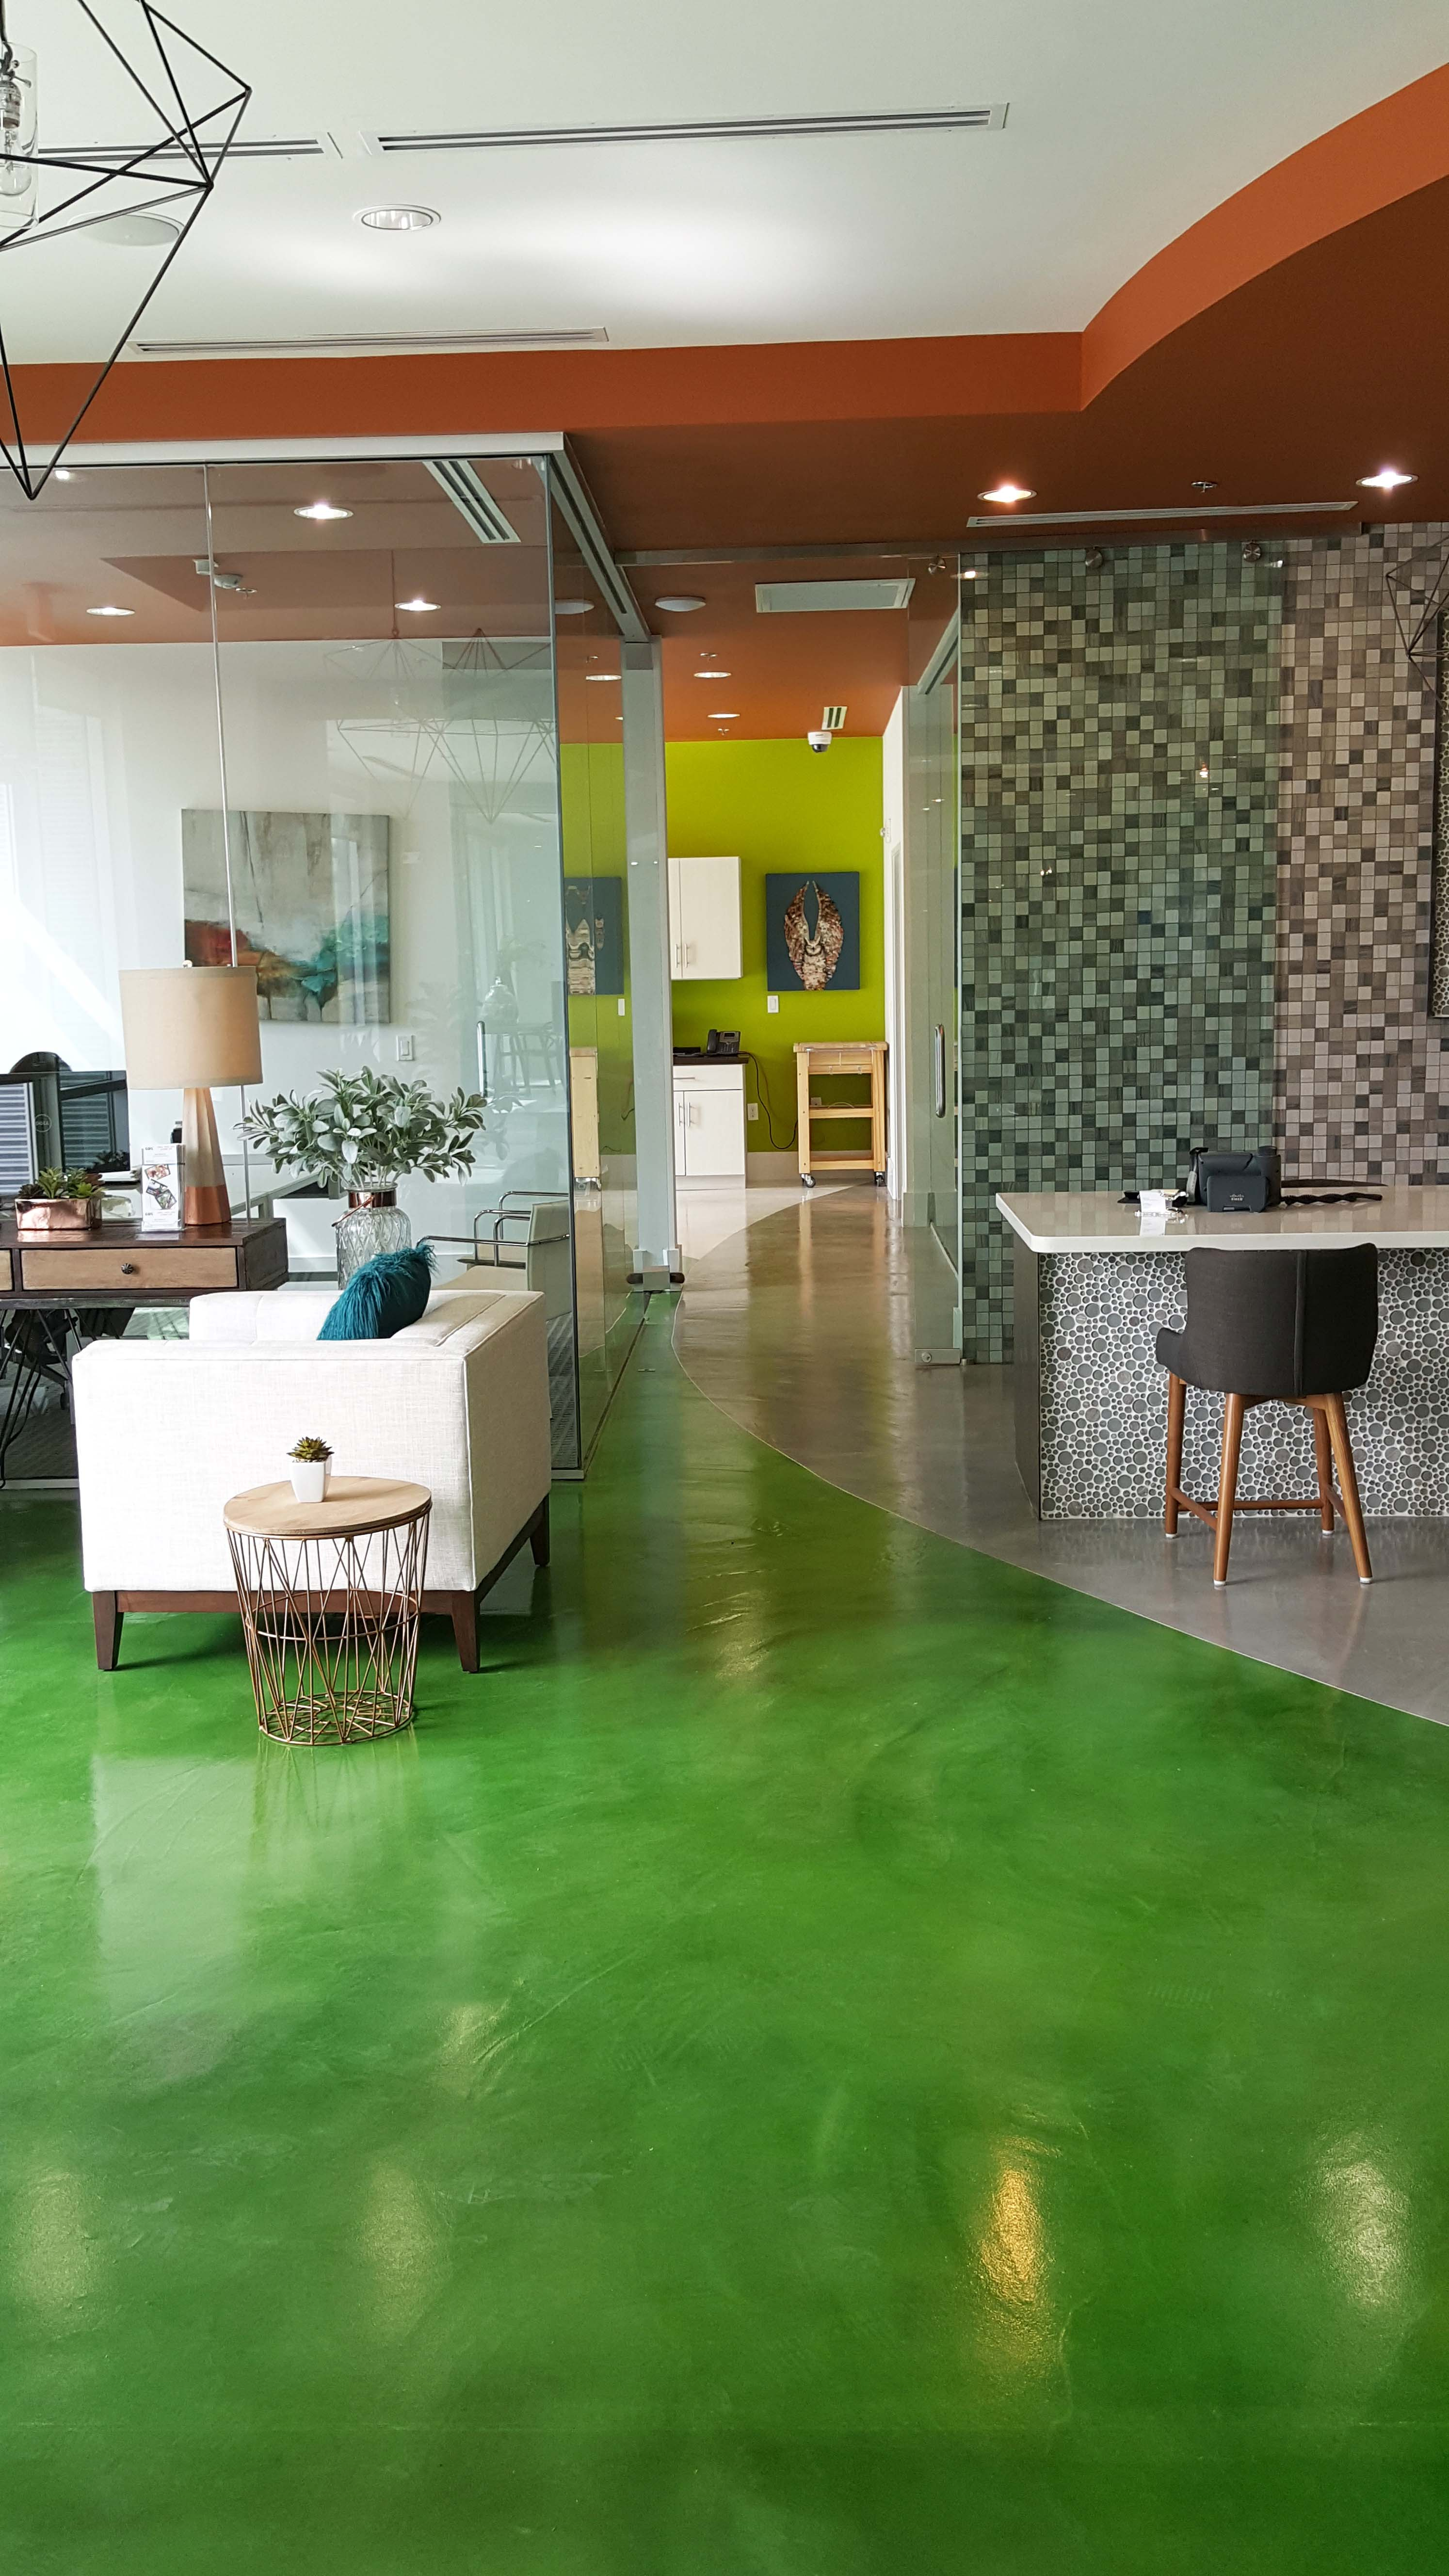 Flooring Installation for Trendy, Art Deco Apartment Complex Exceeds Tight Turnaround Expectations